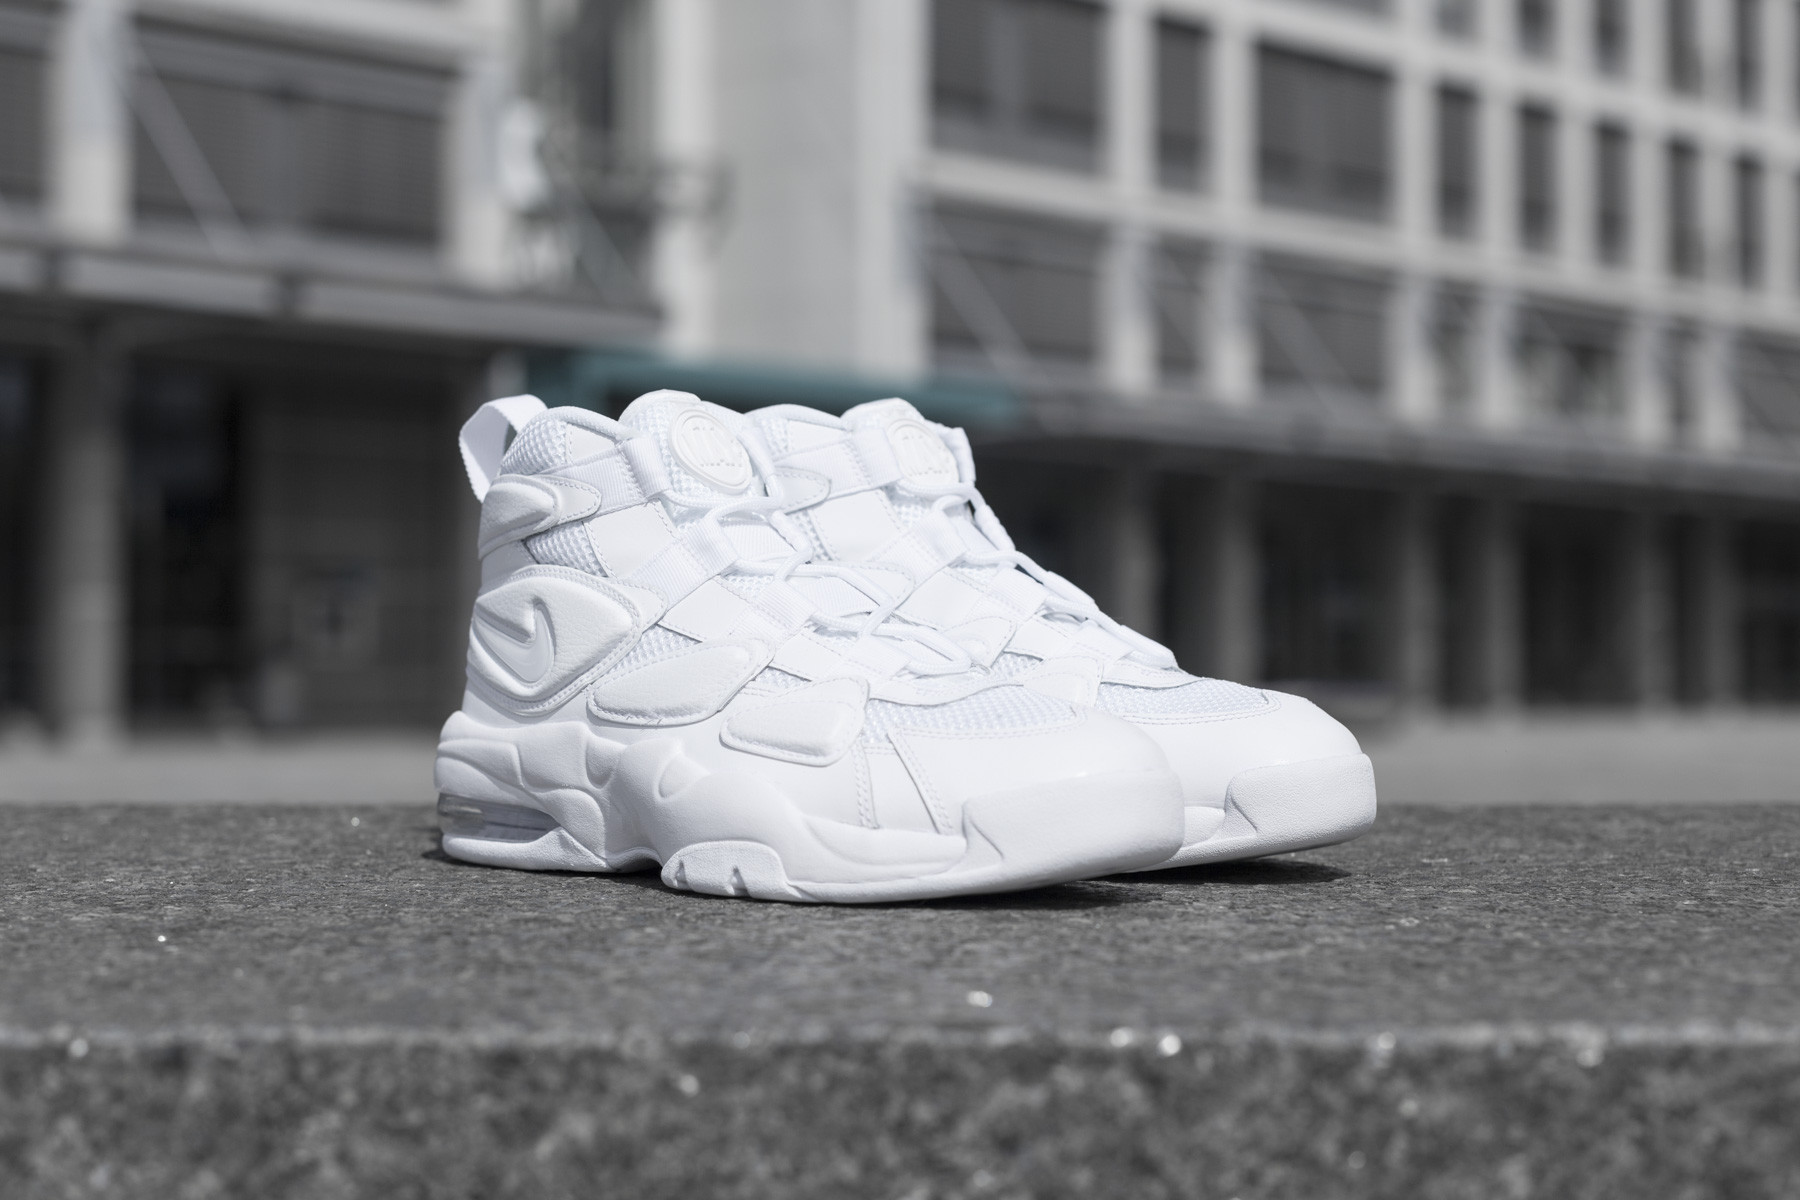 922934 100 Nike Air Max2 Uptempo 94 White | KicksCrew | Shop